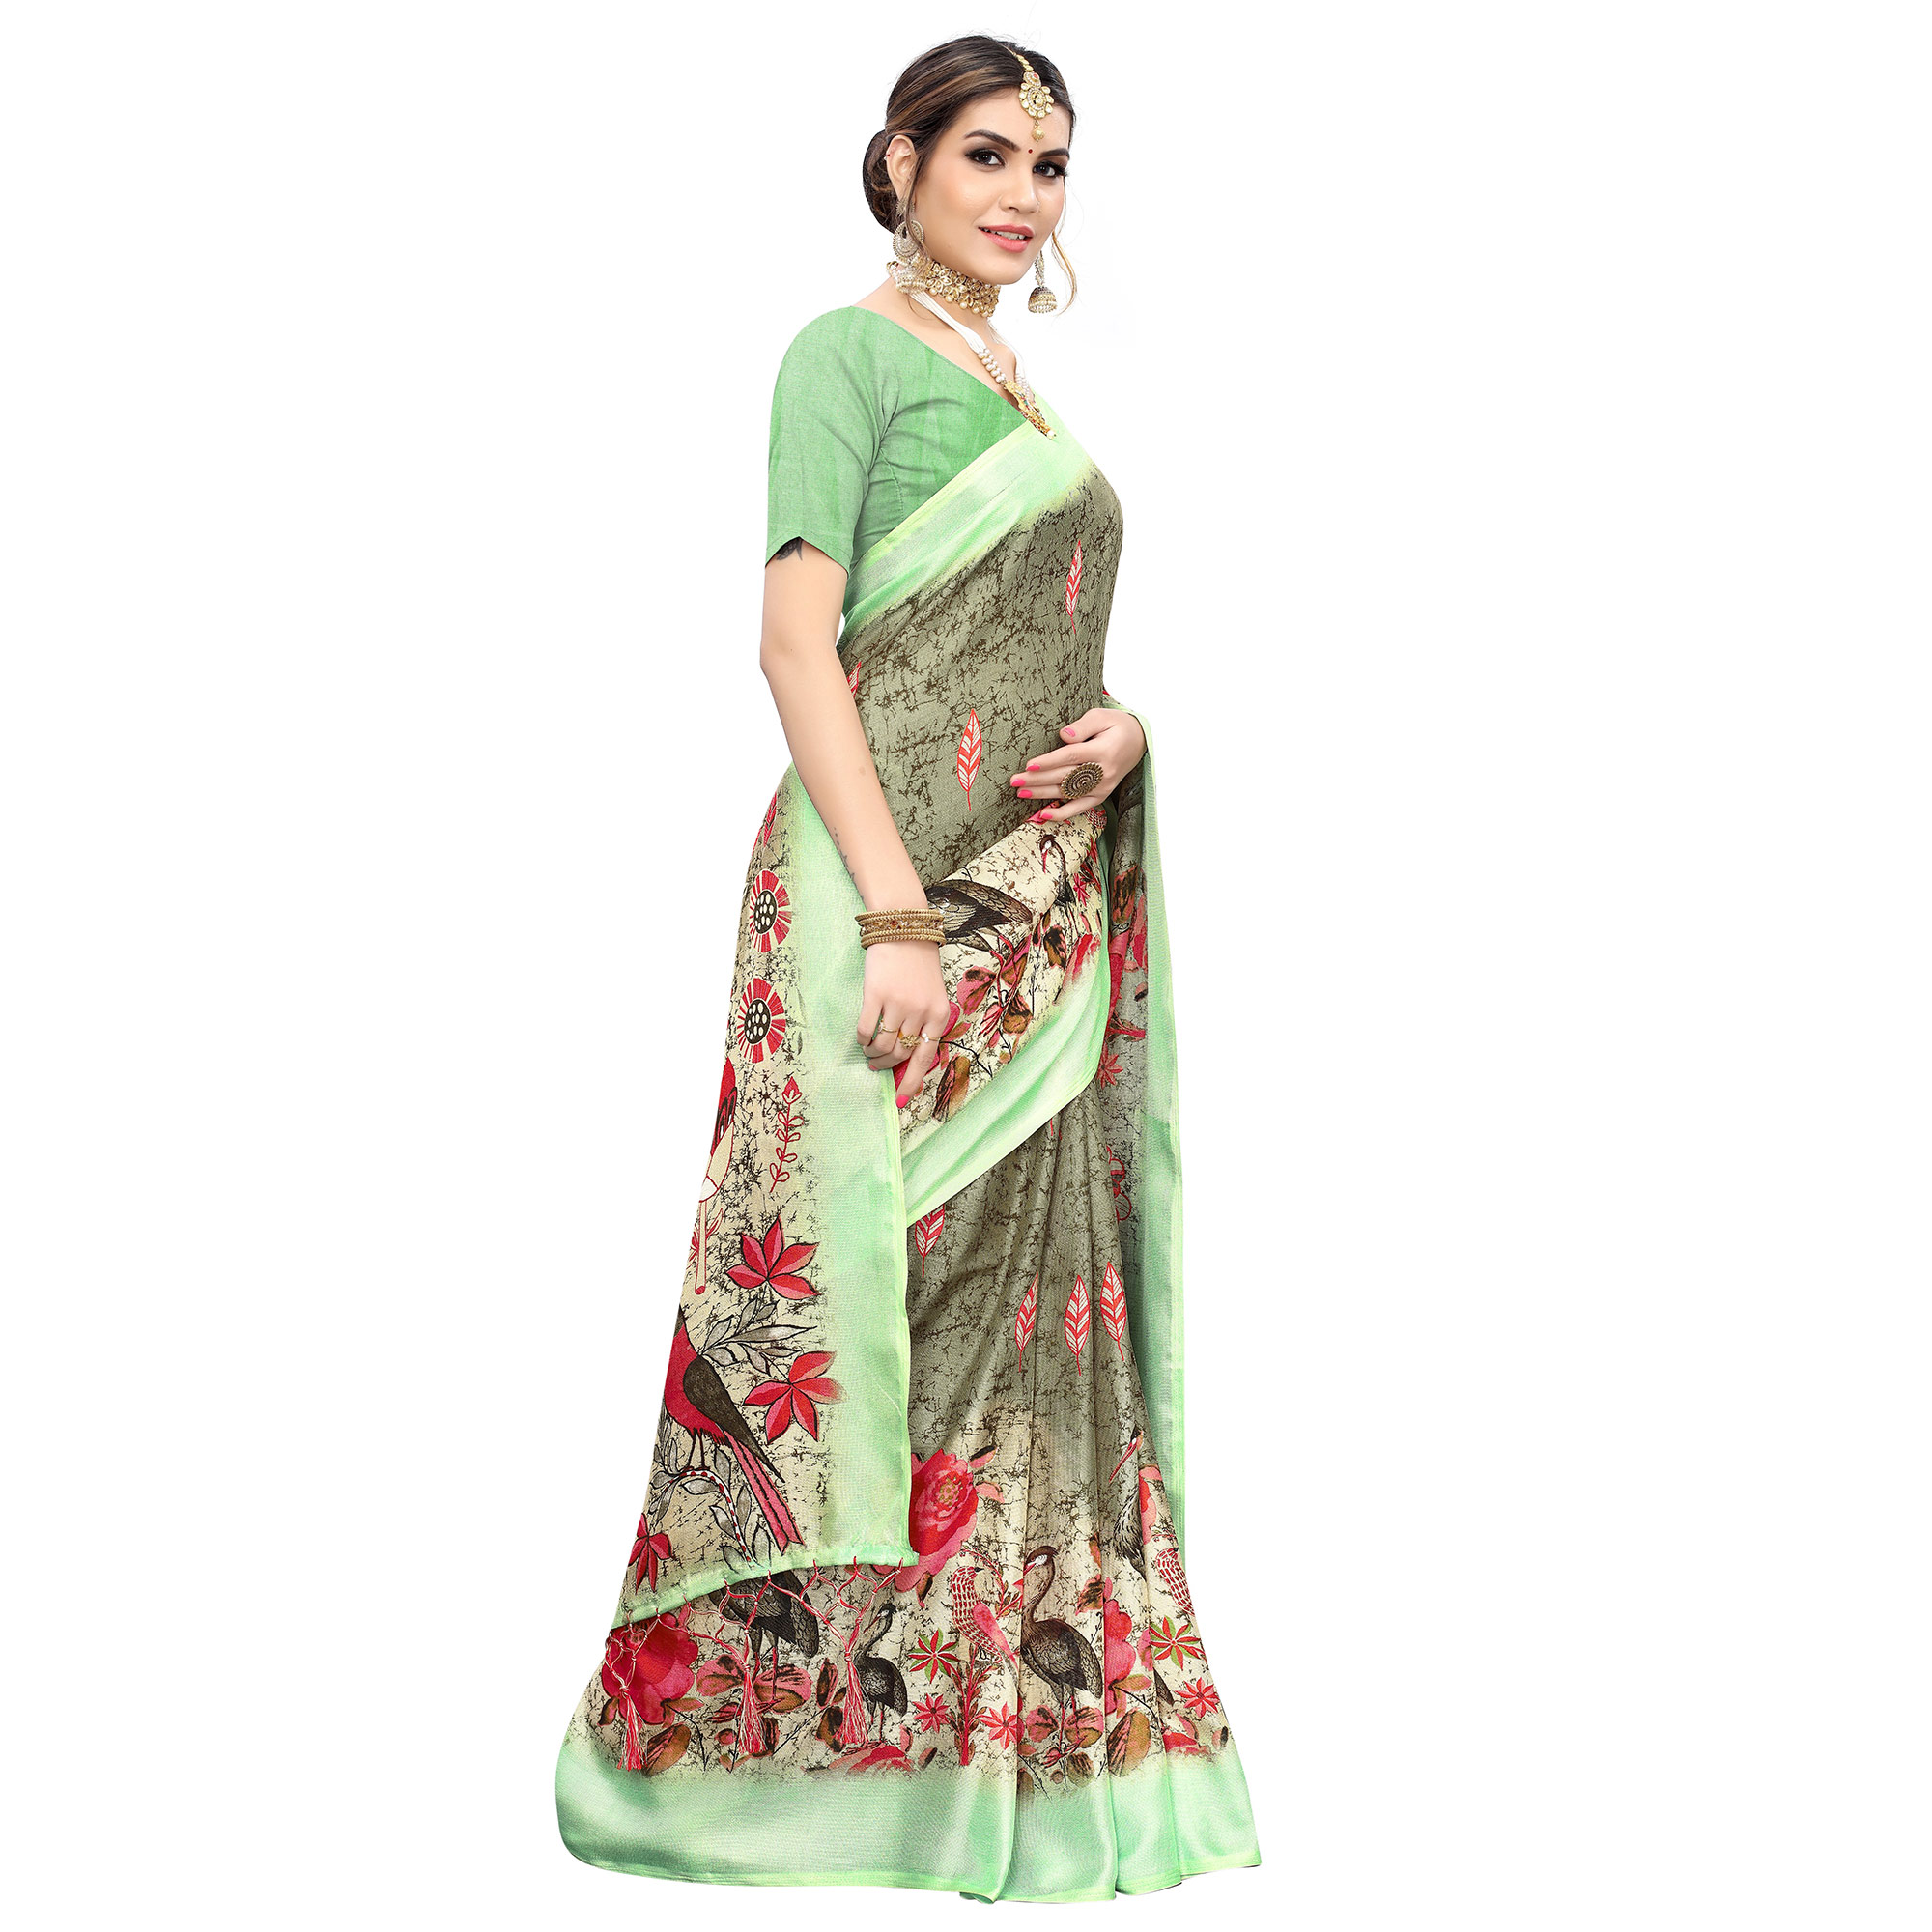 Radiant Green Colored Casual Wear Printed Cotton Saree With Tassels